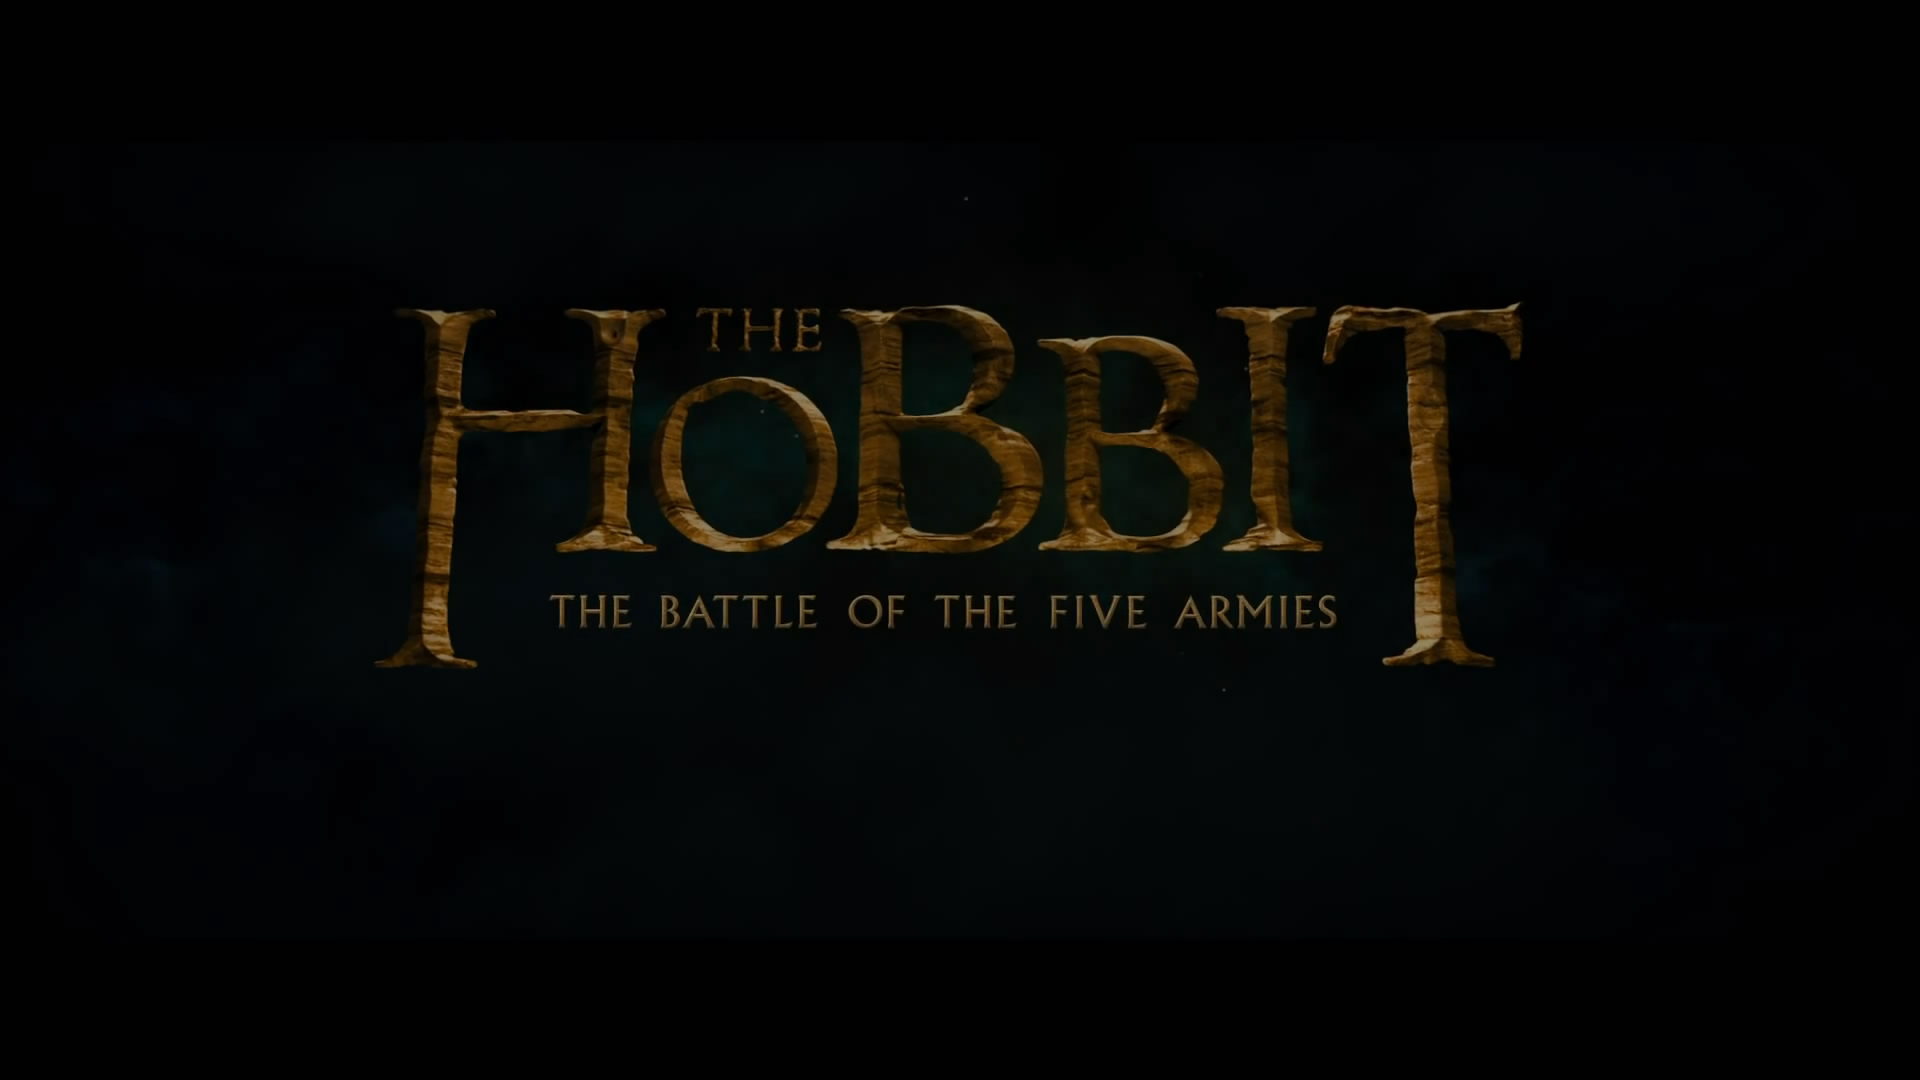 تریلر فیلم The Hobbit: The Battle of the Five Armies